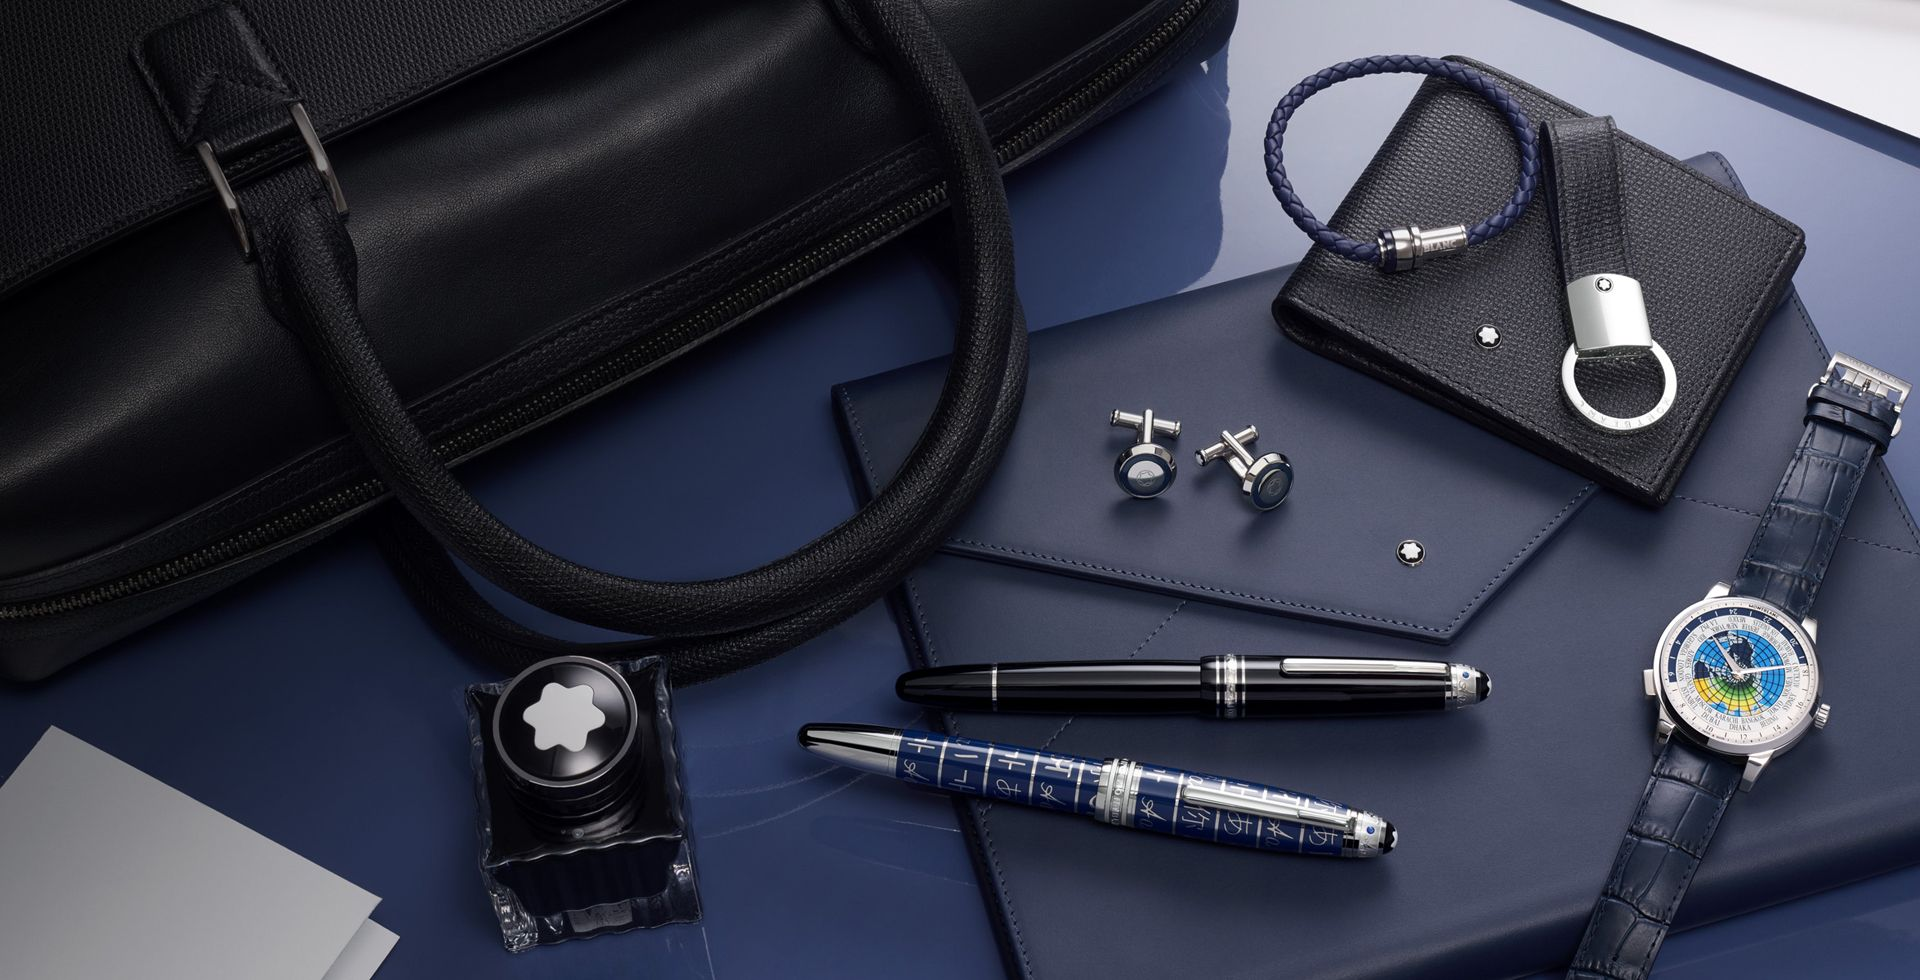 Montblanc raises over $1 Million for UNICEF